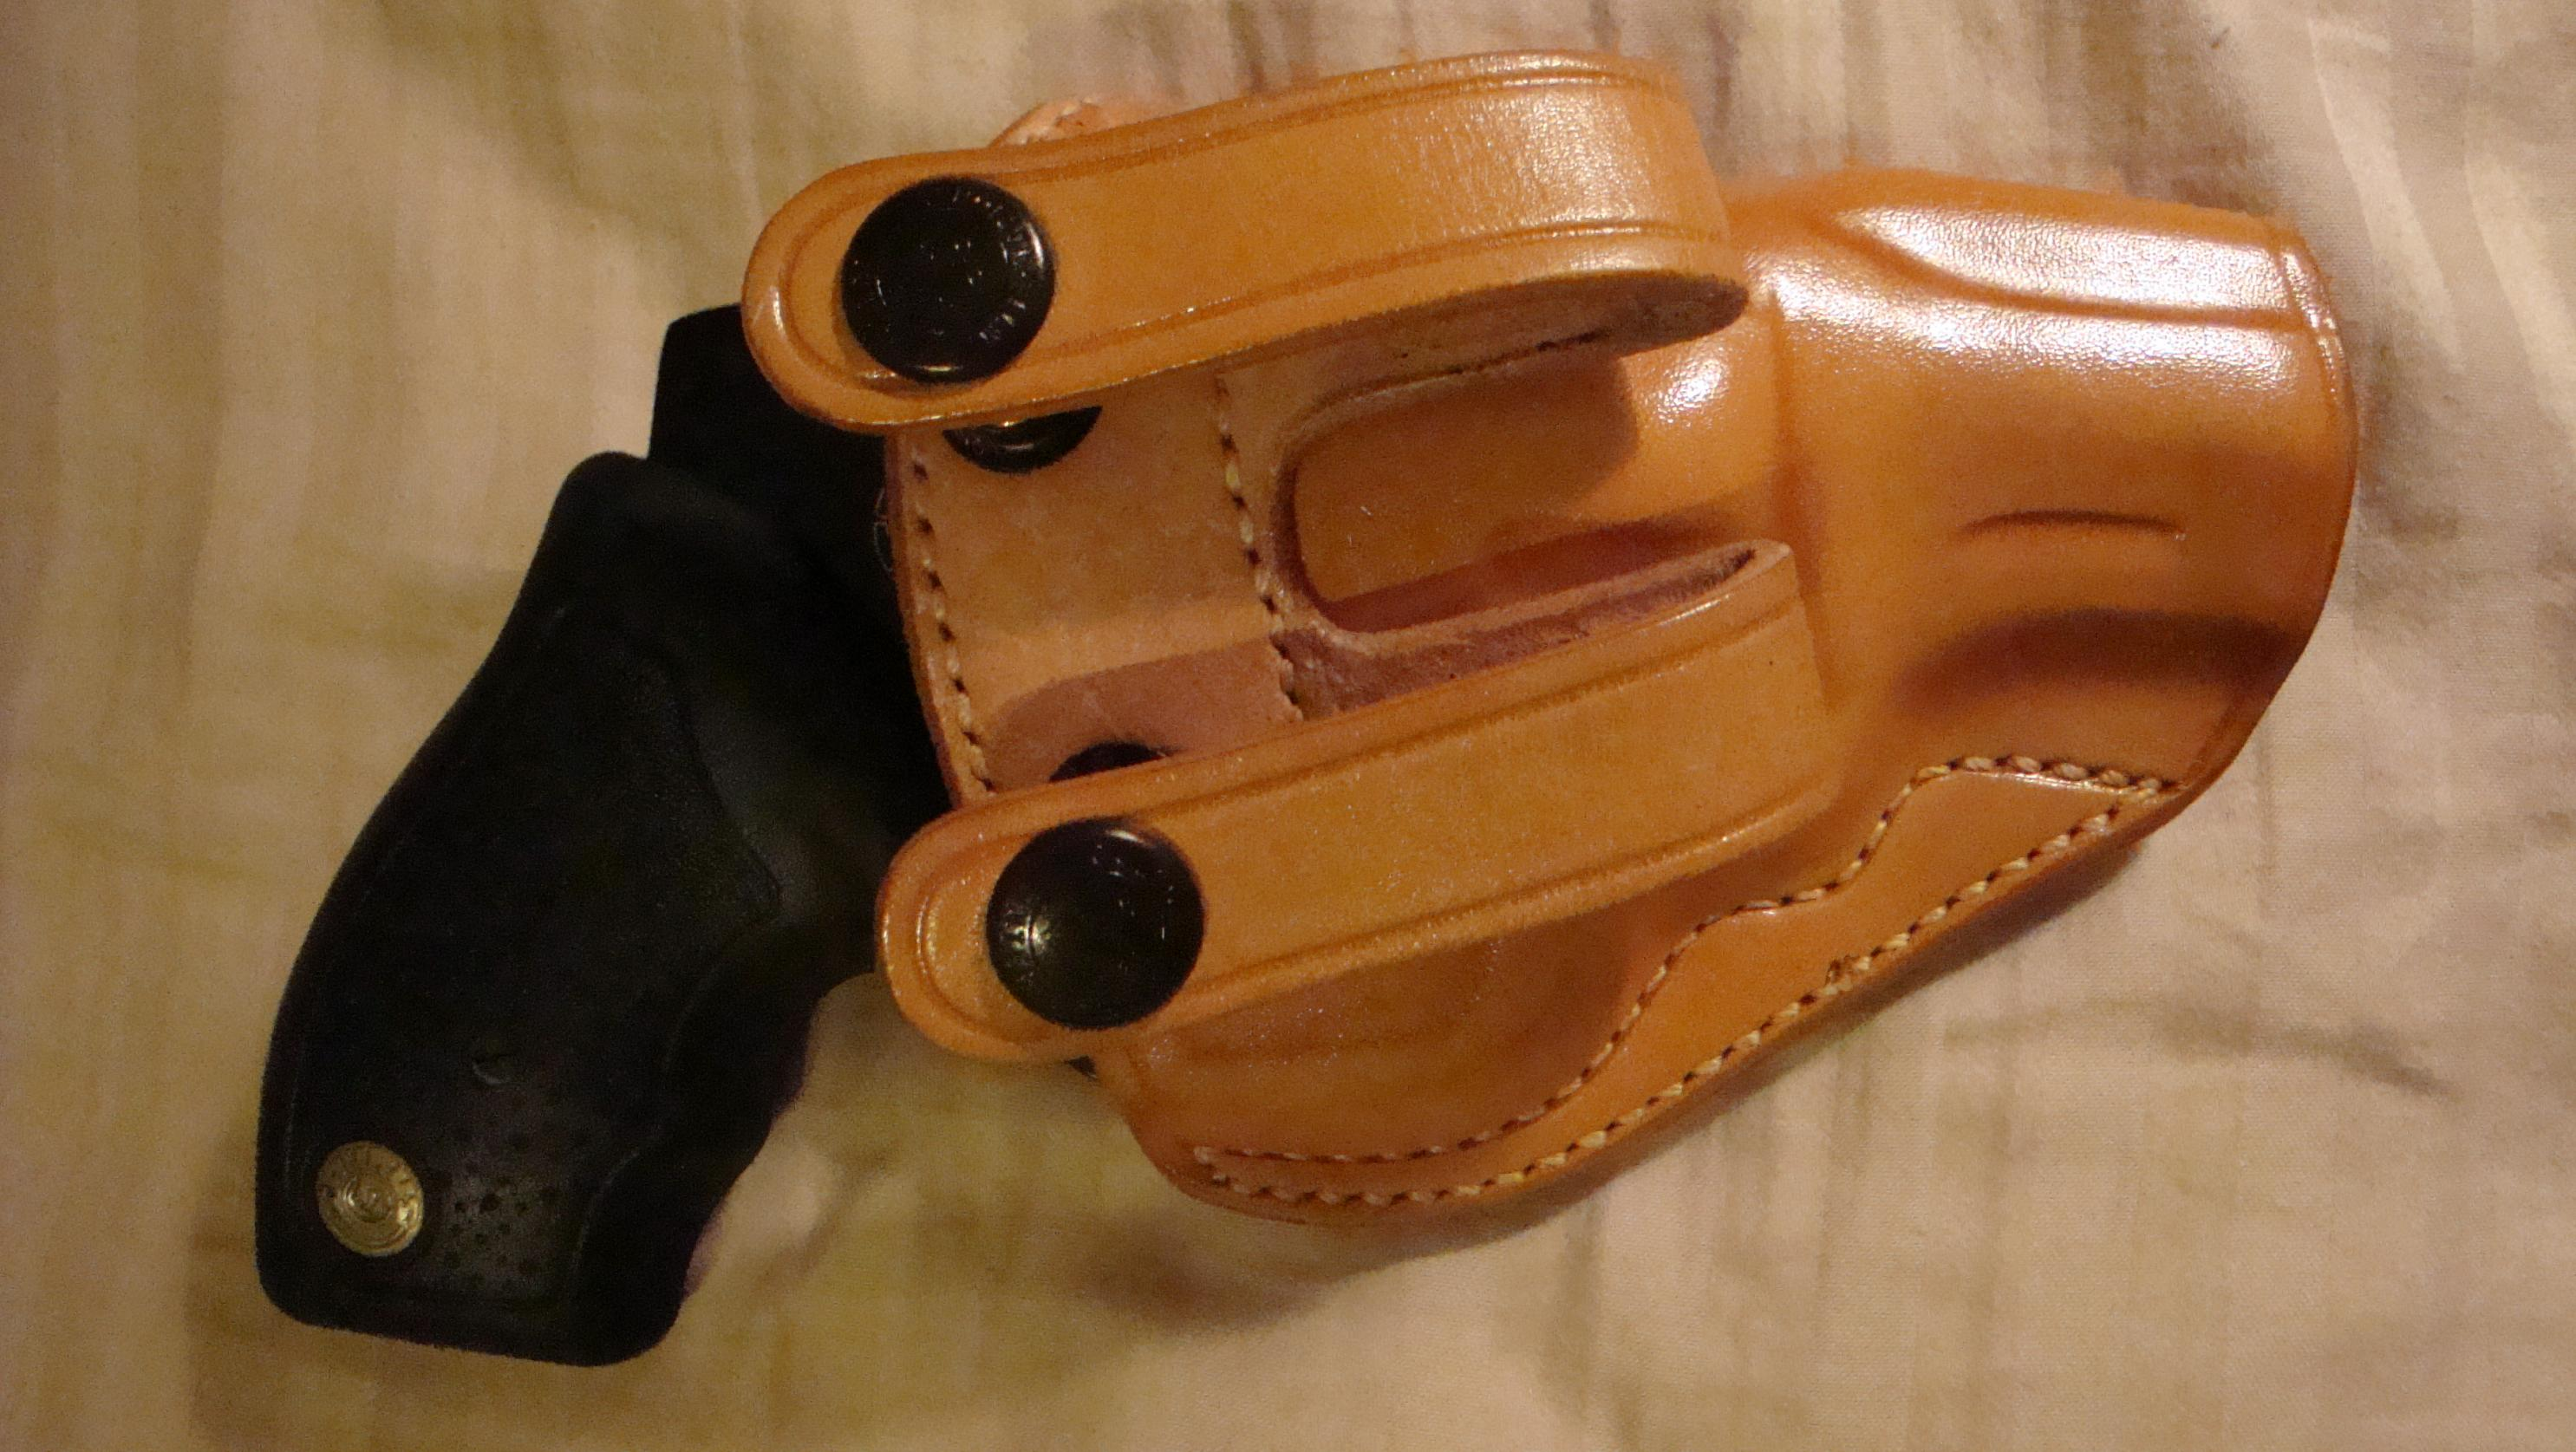 Let's See Your Pic's - How You Carry Concealed.-galco-w-gun-back.jpg